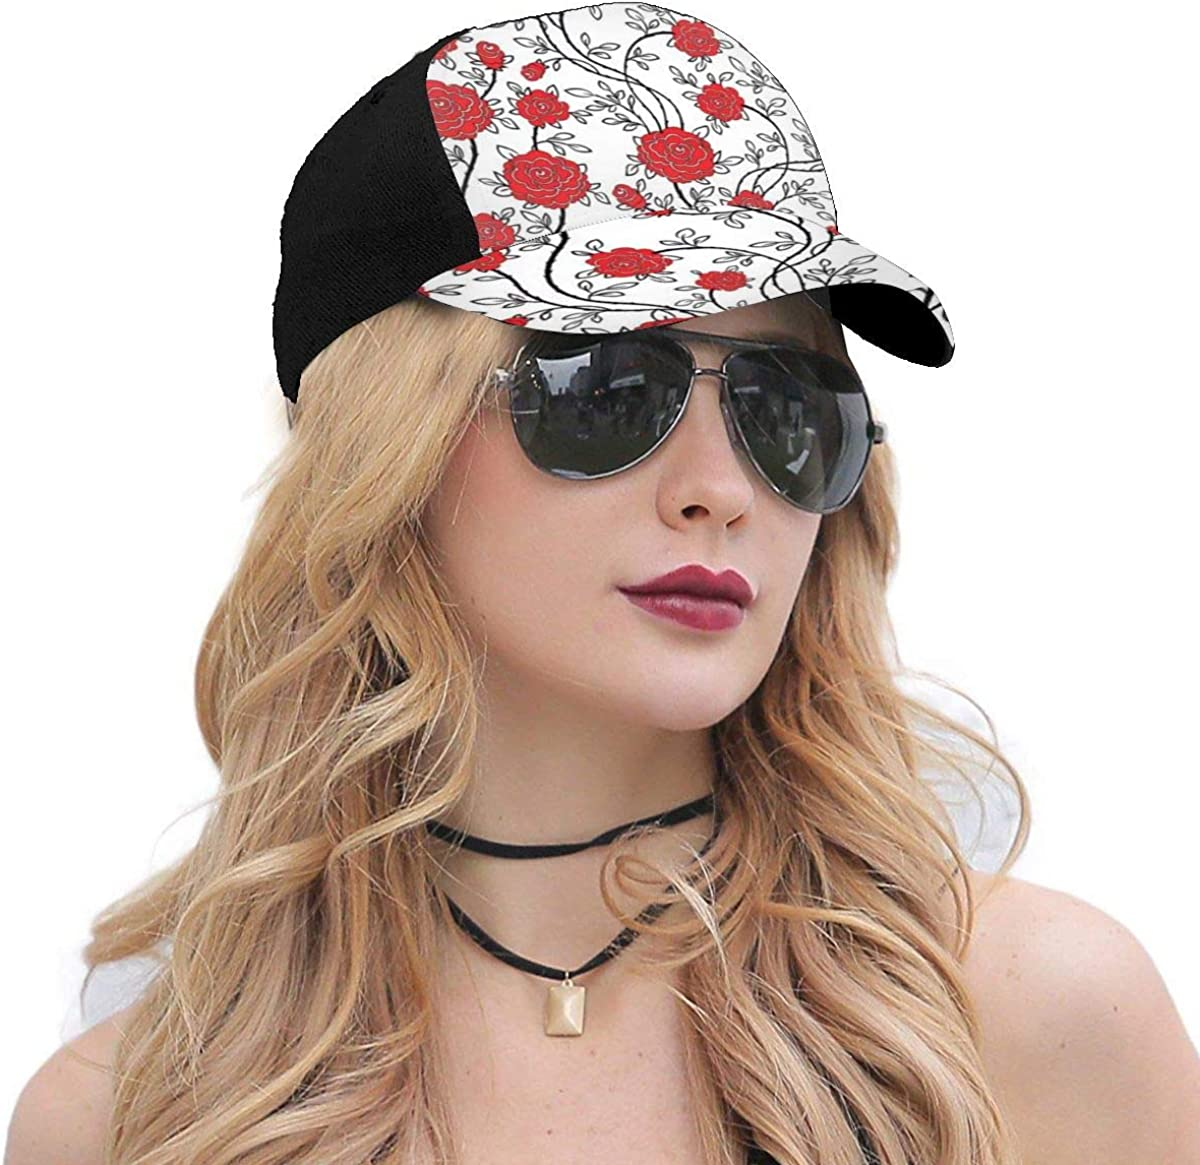 Red Roses Seamless Classic Baseball Cap Men Women Dad Hat Twill Adjustable Size